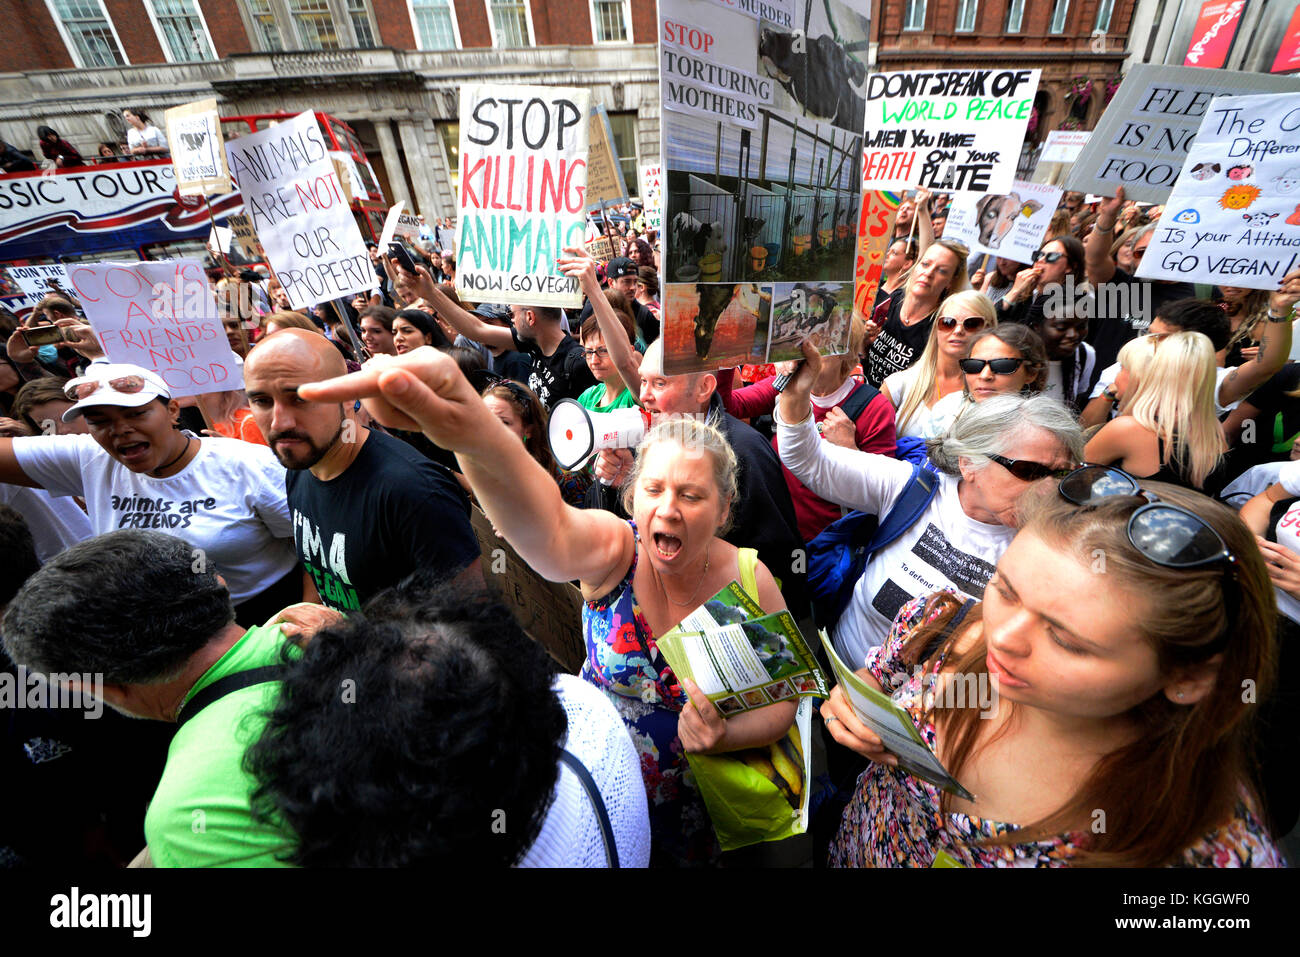 Vegan activists protesting in Whitehall London during an animal rights protest demonstration rally march. Placards. Stock Photo